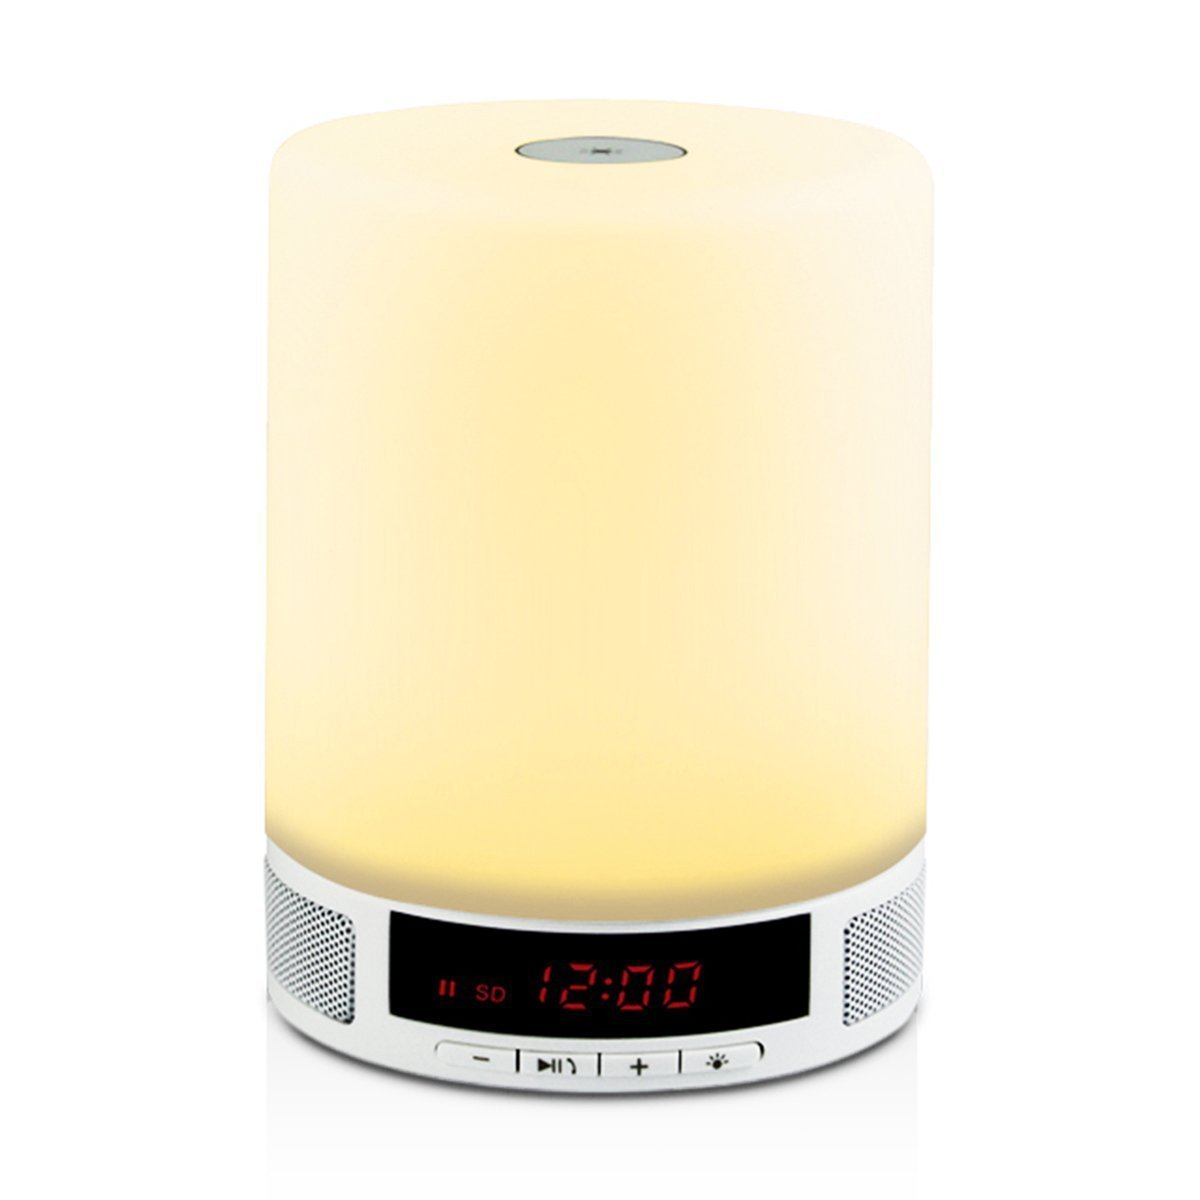 W-inds Bluetooth 4.0 Speaker with Bedroom Table Lamp,Nightlights for Kids,Alarm Clock, Dynamic Color Changing Mode, Speakerphone, TF Card, Hands-Free Calls